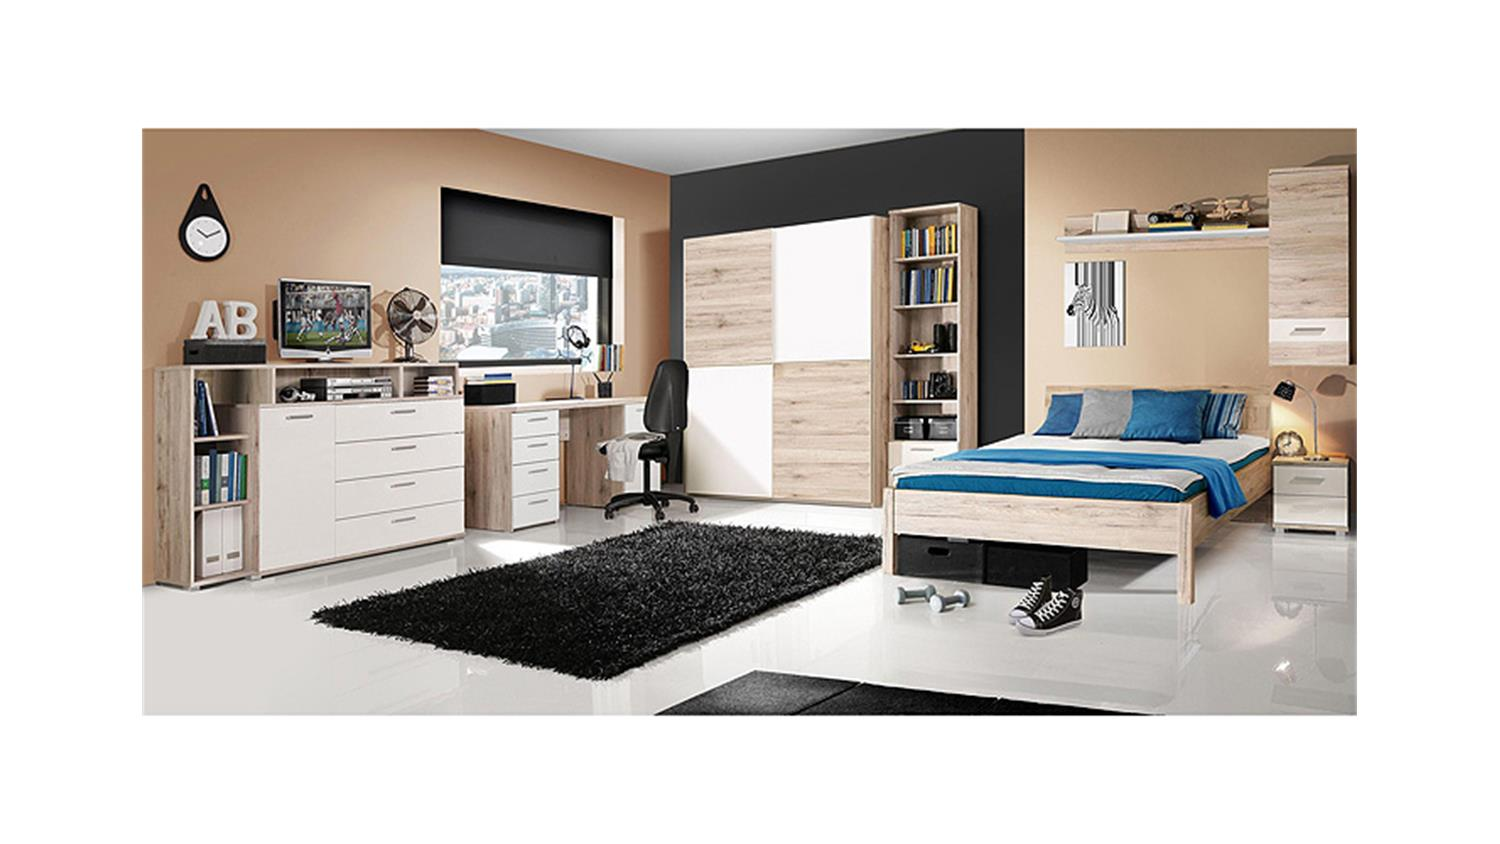 schrank 150 cm breit wei e kinderkleiderschr nke online kaufen stahl schiebet ren schrank 2. Black Bedroom Furniture Sets. Home Design Ideas